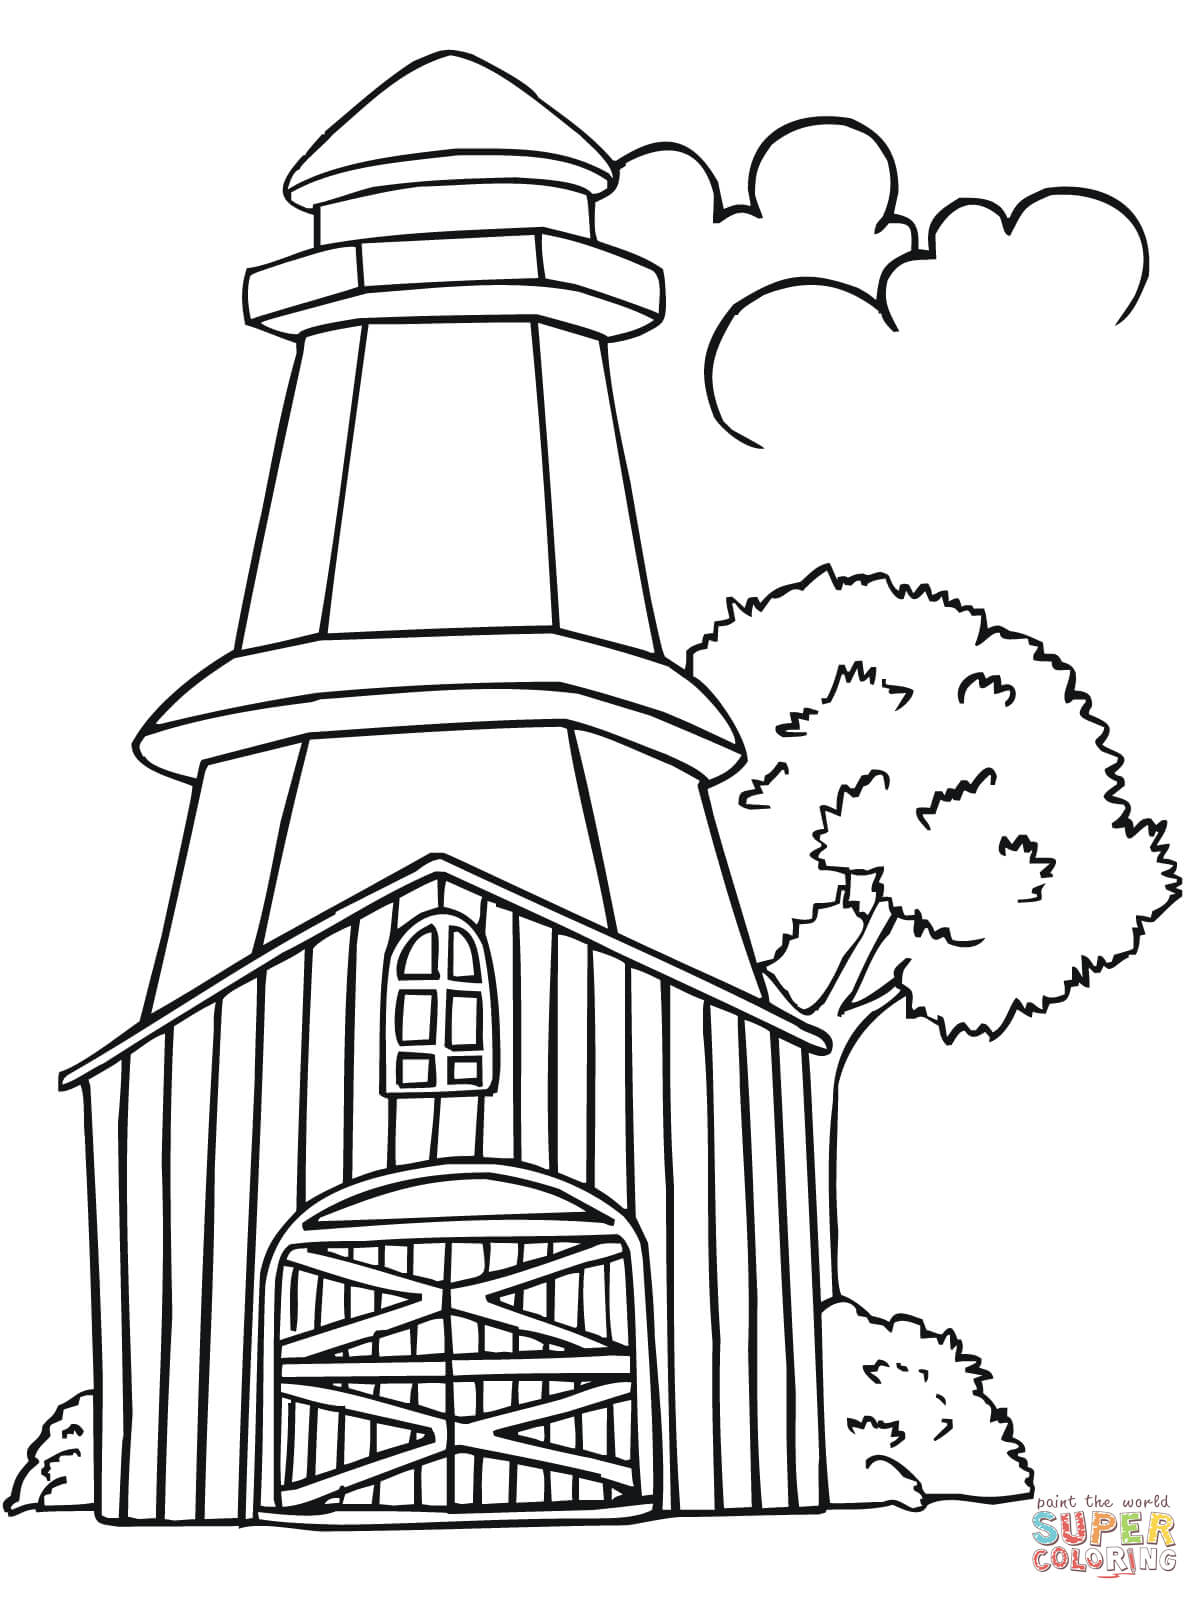 Sweden Lighthouse Coloring Page